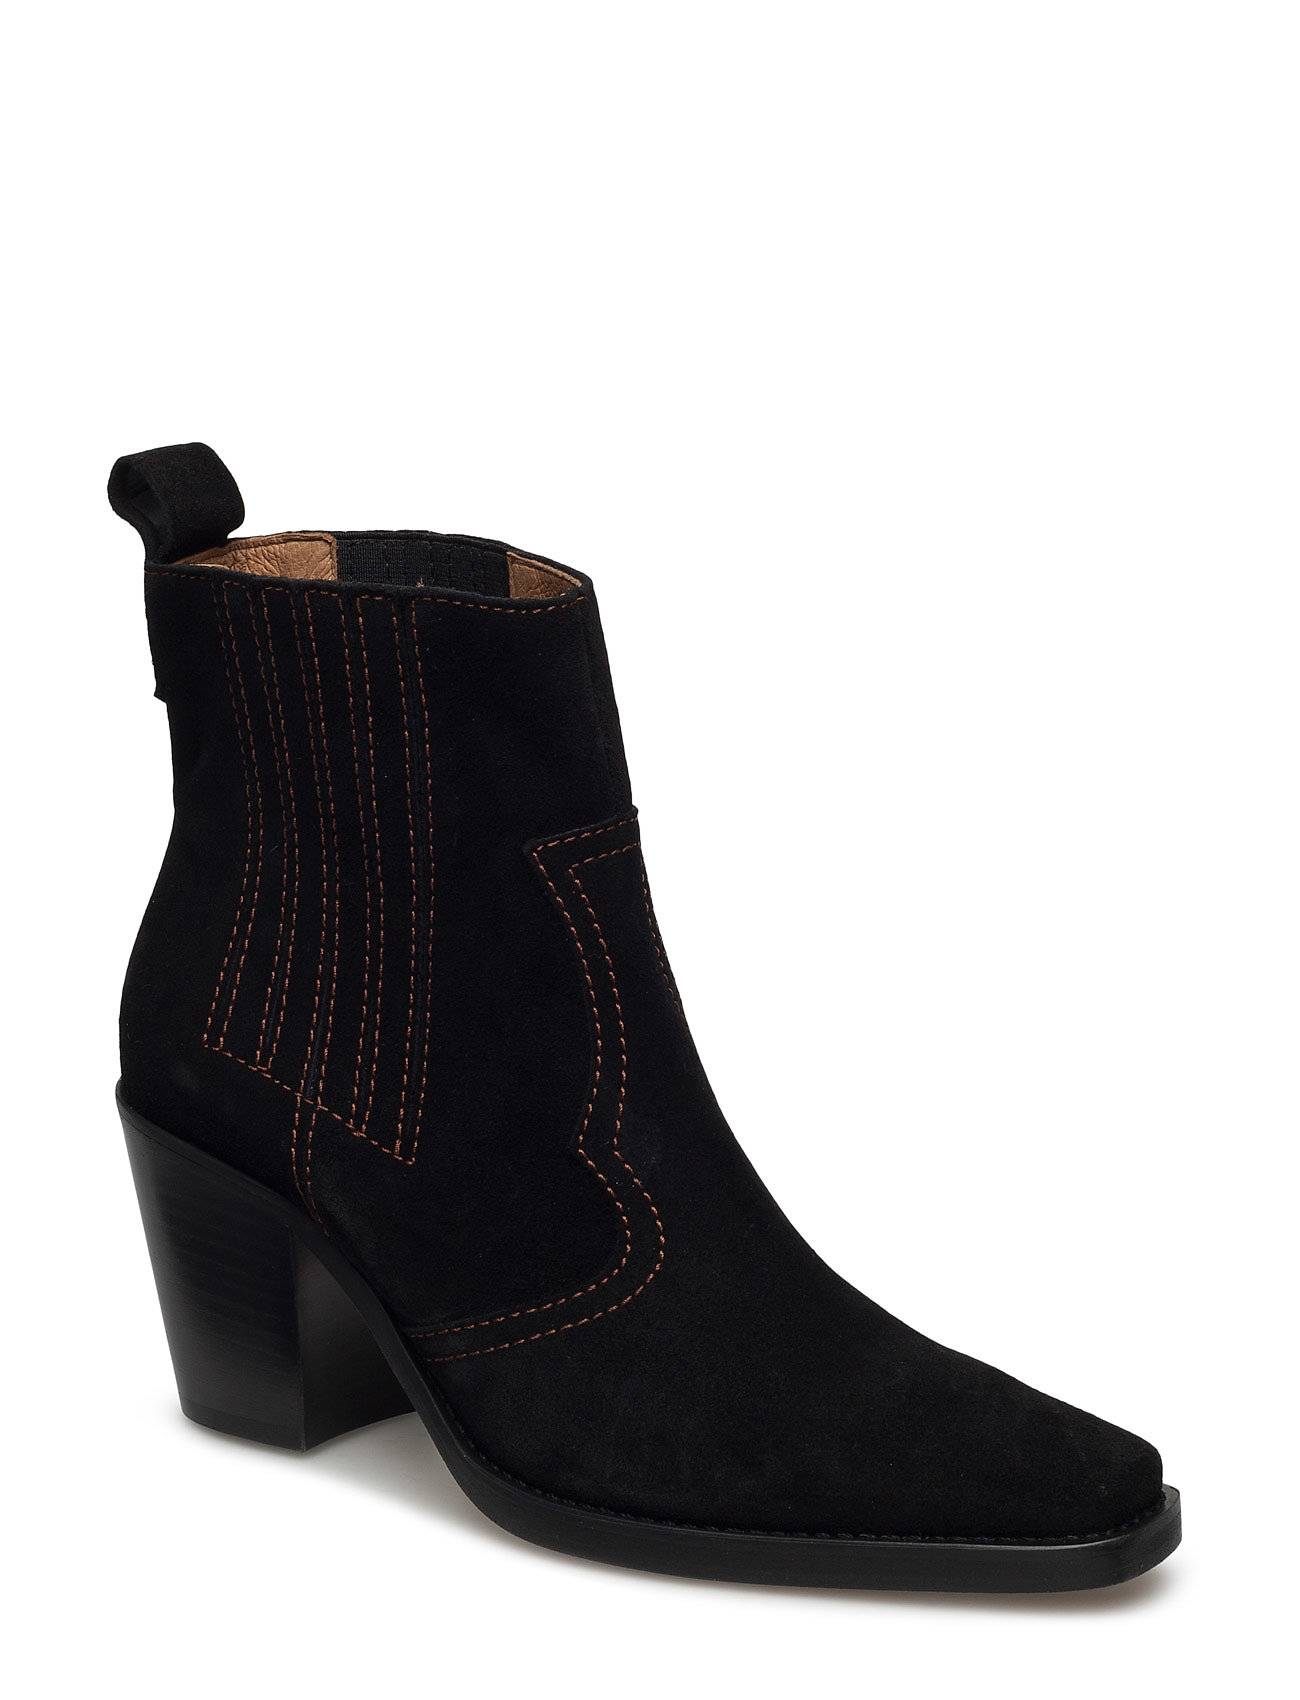 Ganni Clemence Ankle Boots